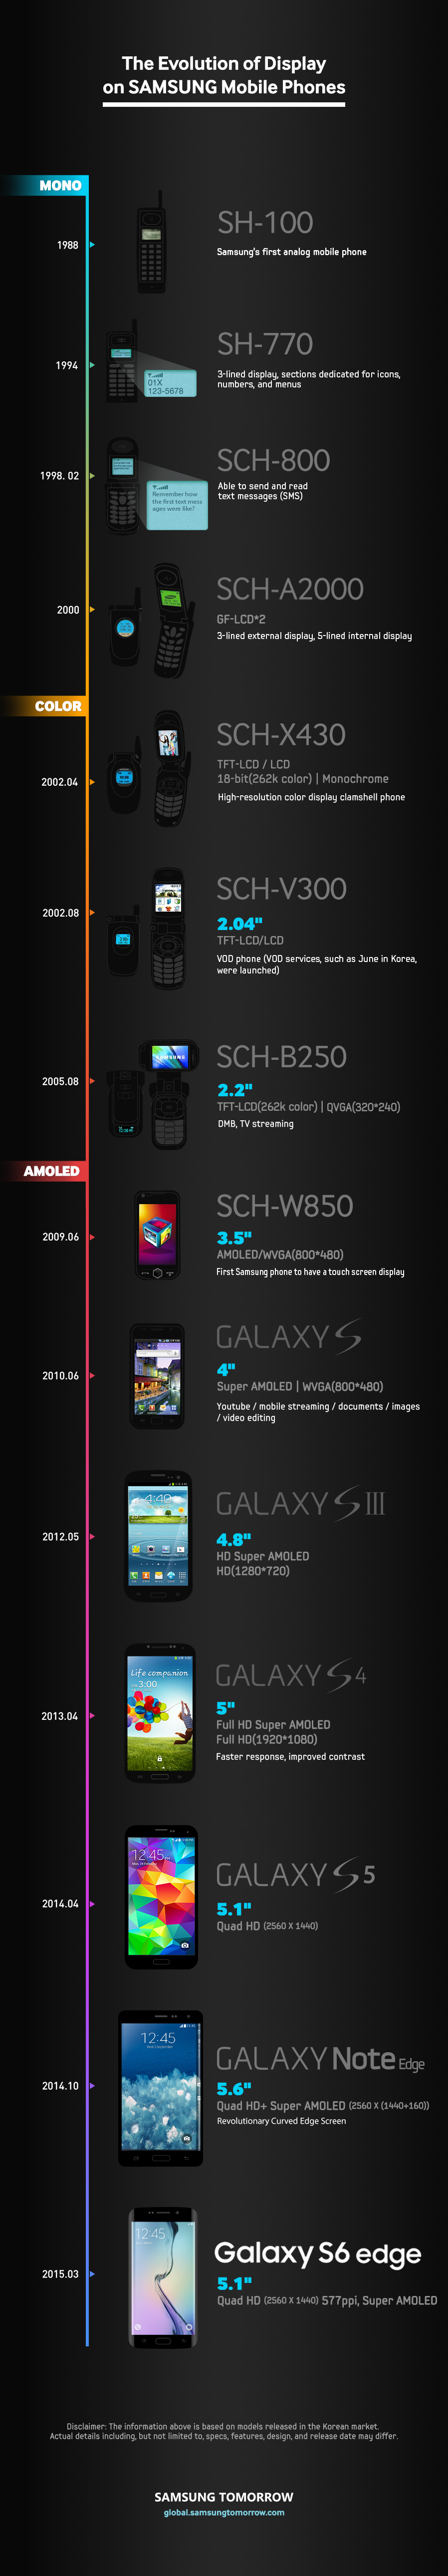 Evolution-of-Smartphone_Display_info_304